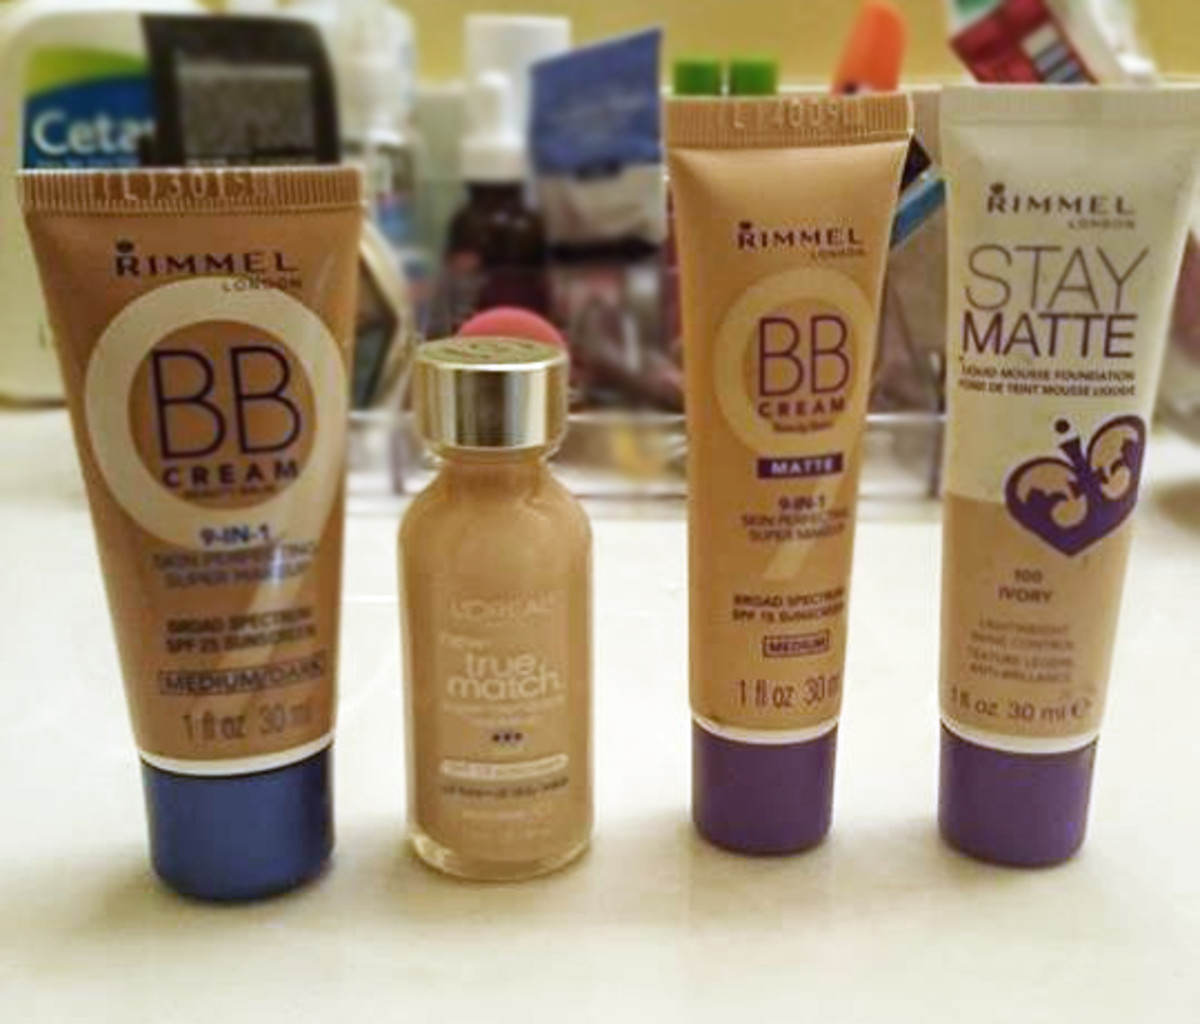 Rimmel's BB Creams and L'Oreal True Match Foundation side by side